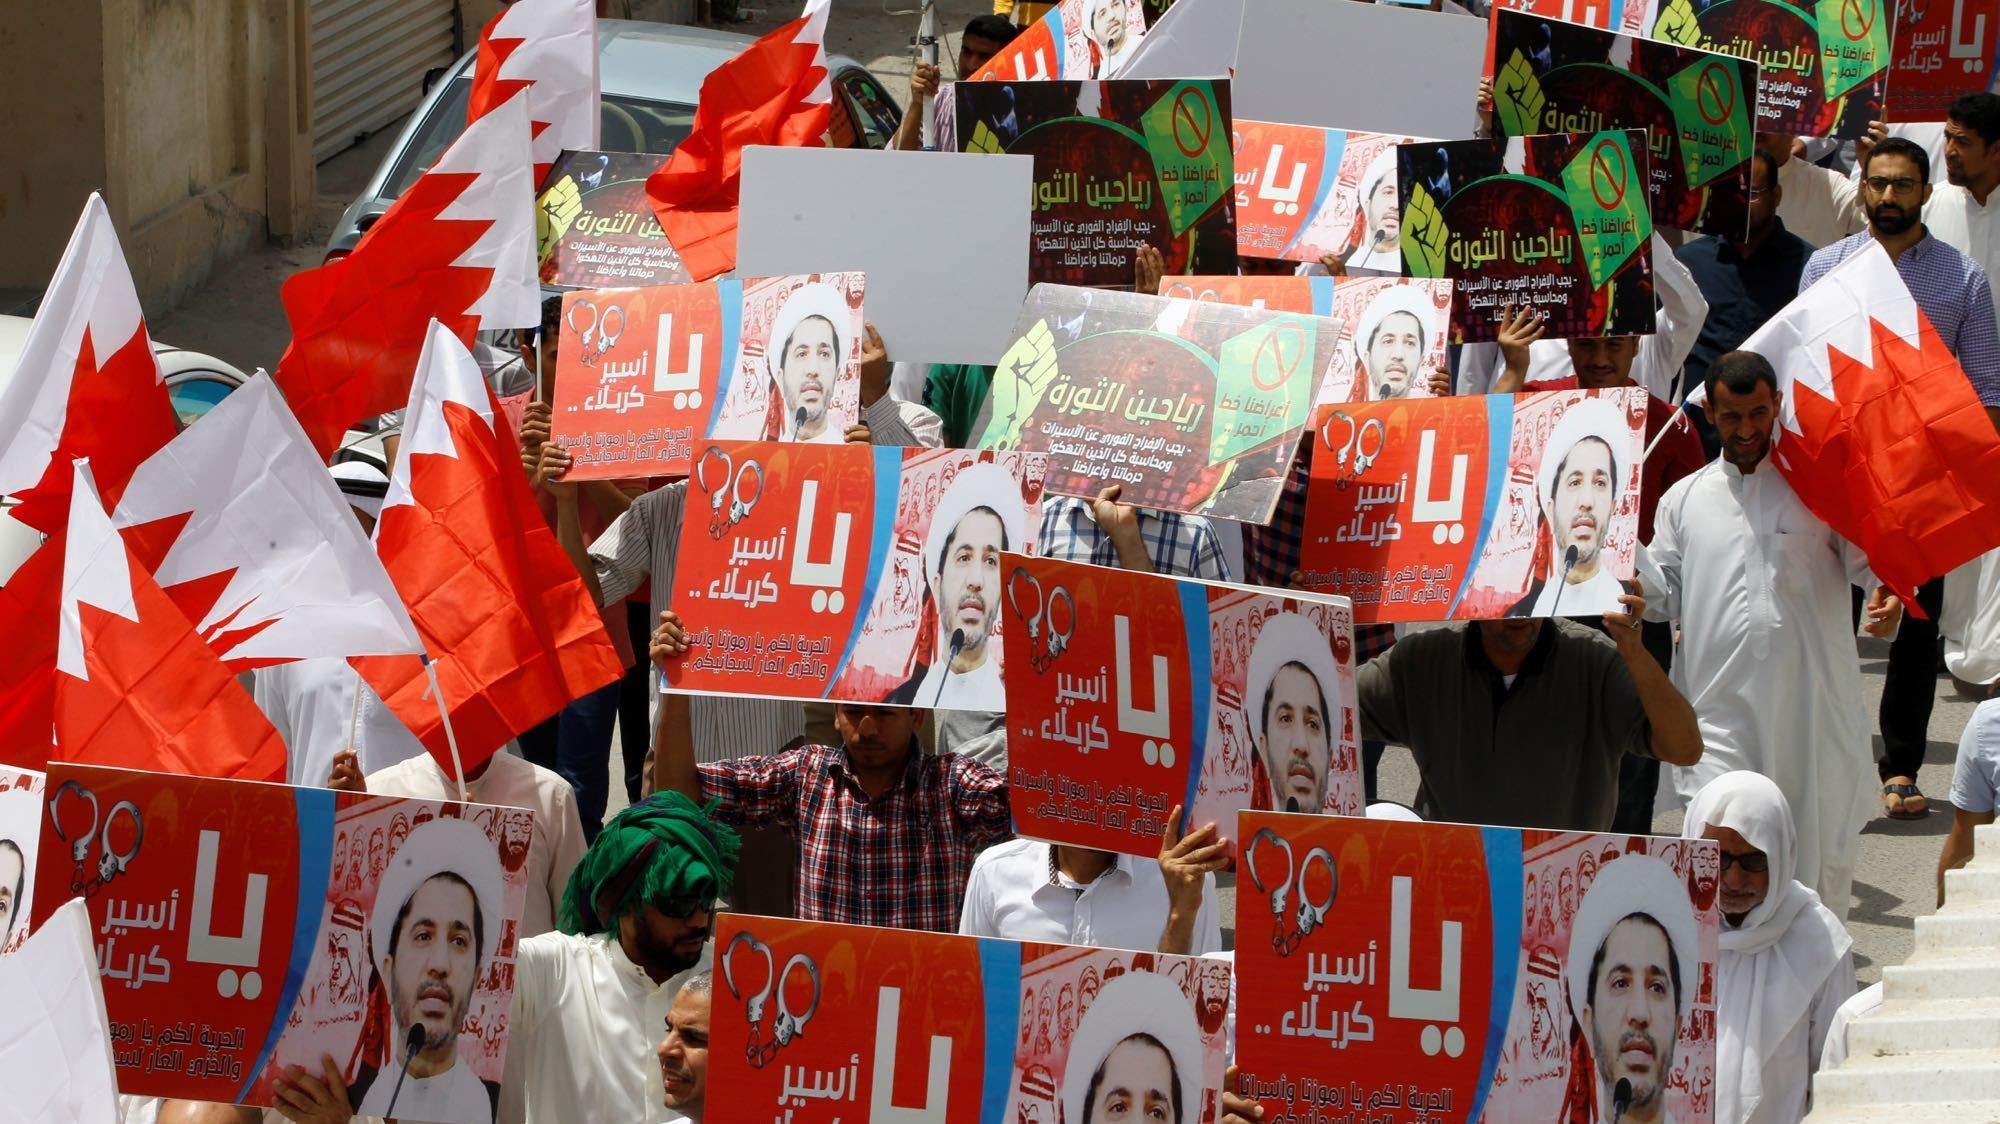 Bahrain's Government Is Trying to Shut Down Its Main Opposition Group